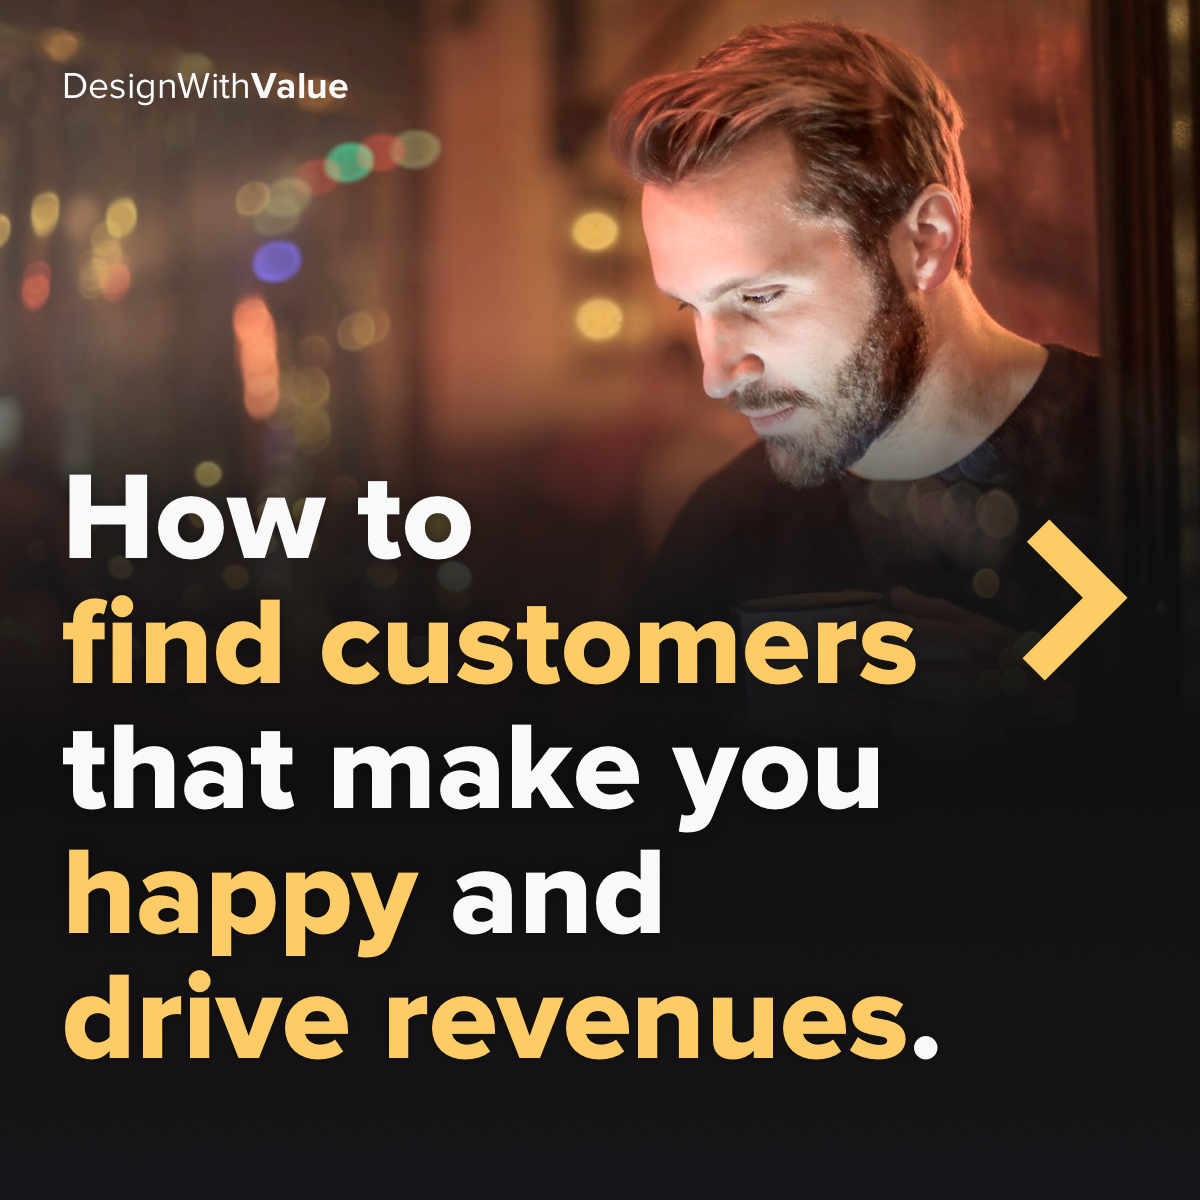 How to find customers that make you happy and drive revenues.